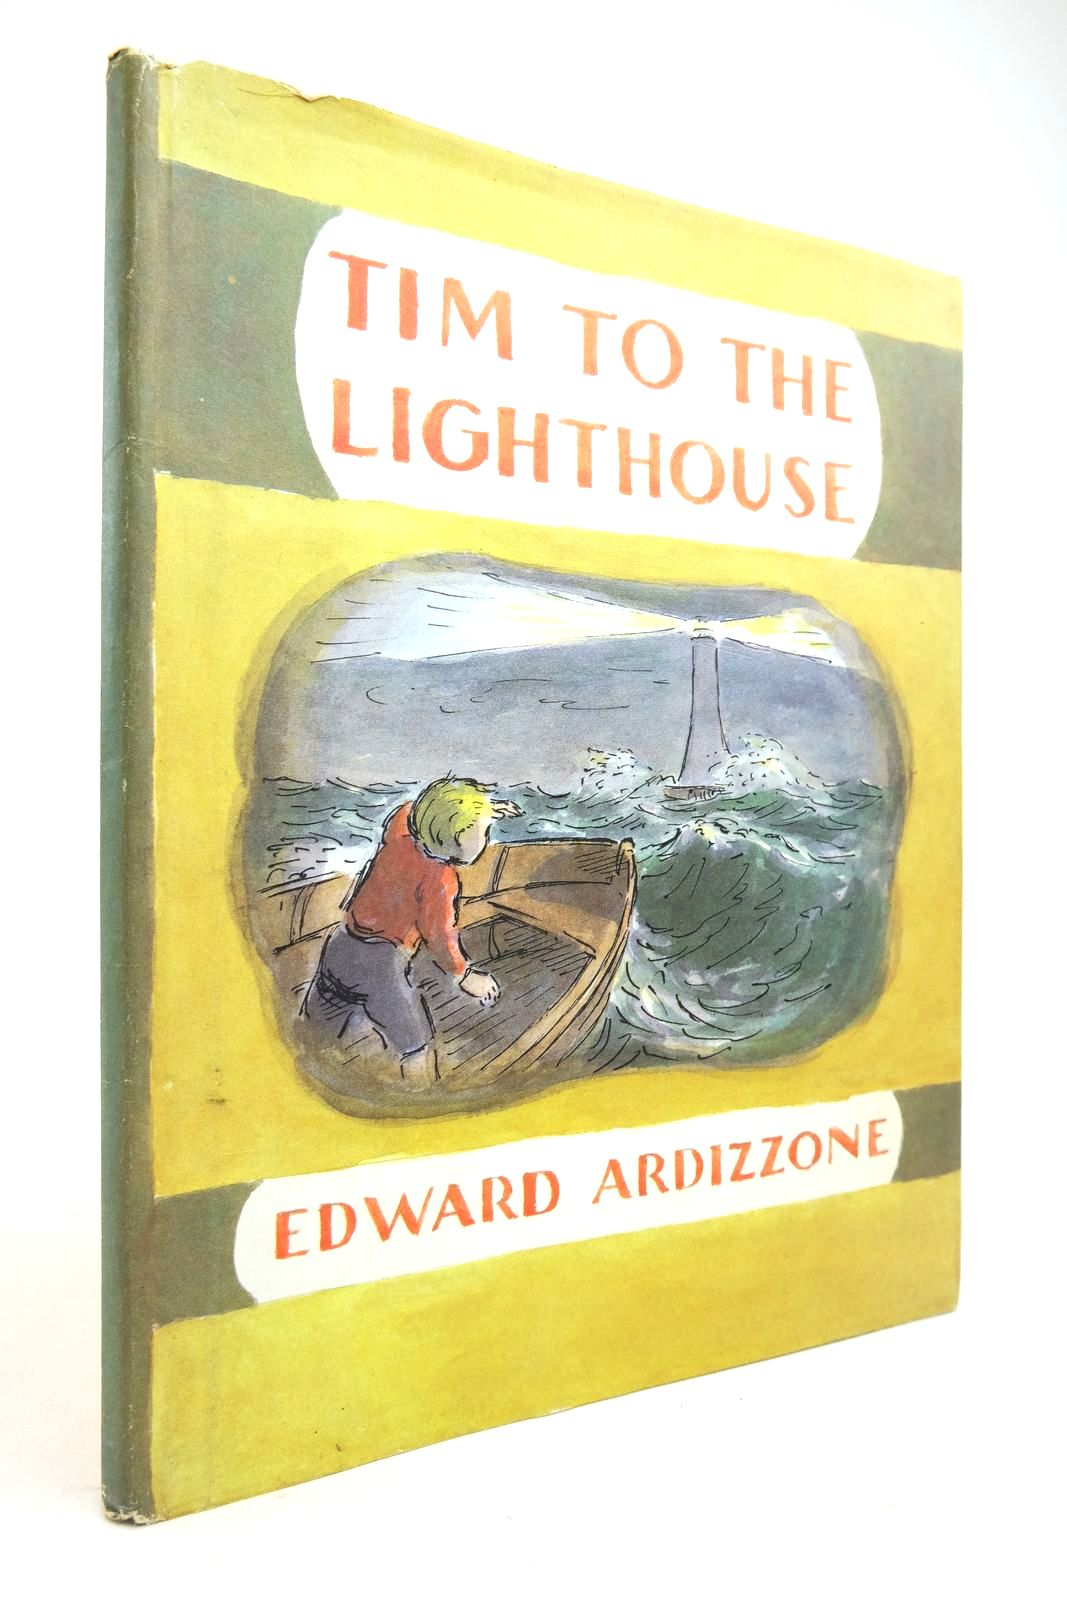 Photo of TIM TO THE LIGHTHOUSE written by Ardizzone, Edward illustrated by Ardizzone, Edward published by Oxford University Press (STOCK CODE: 2134785)  for sale by Stella & Rose's Books